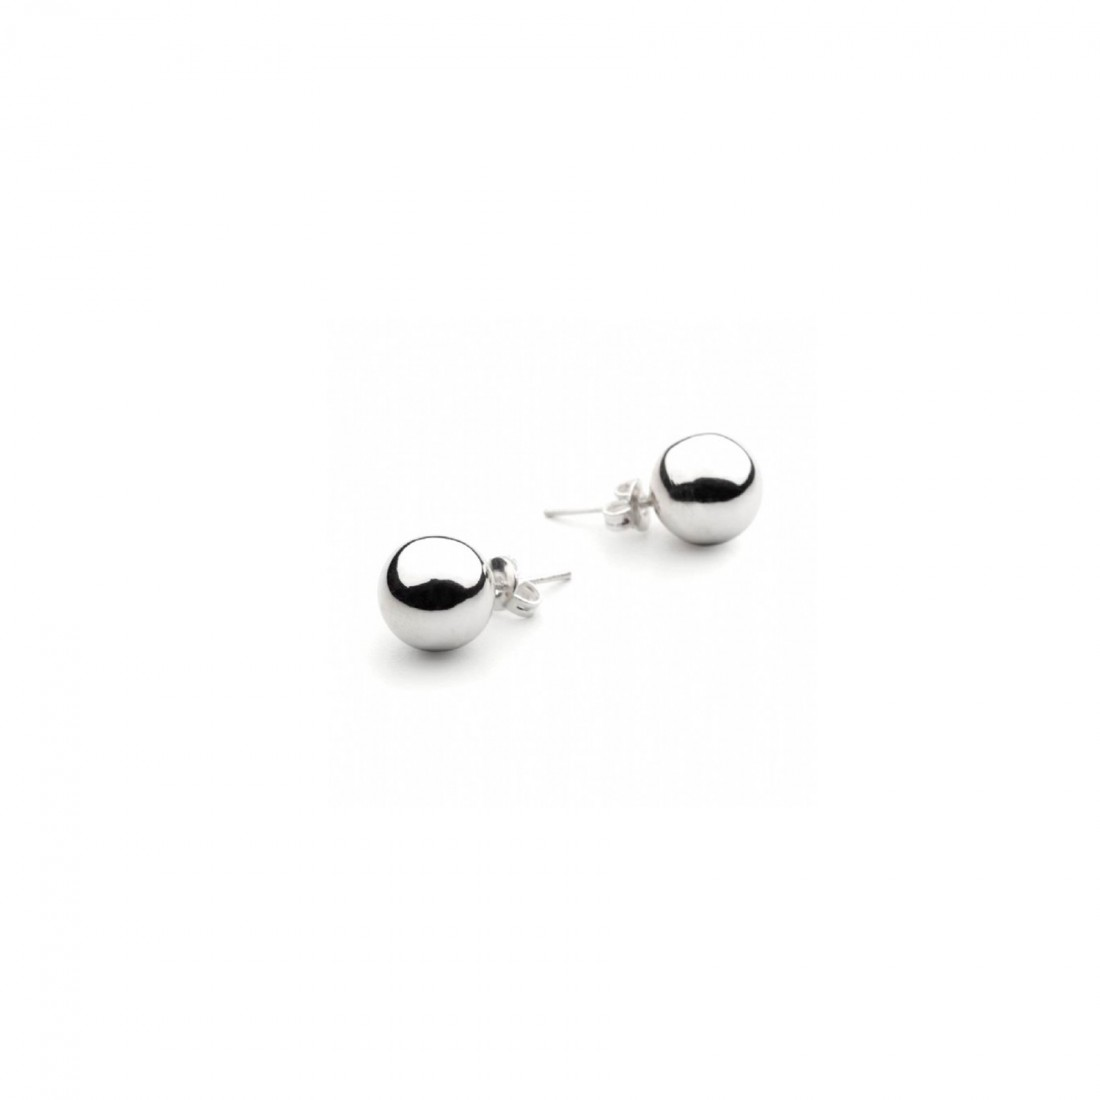 10mm Sterling Silver Ball Stud Earrings